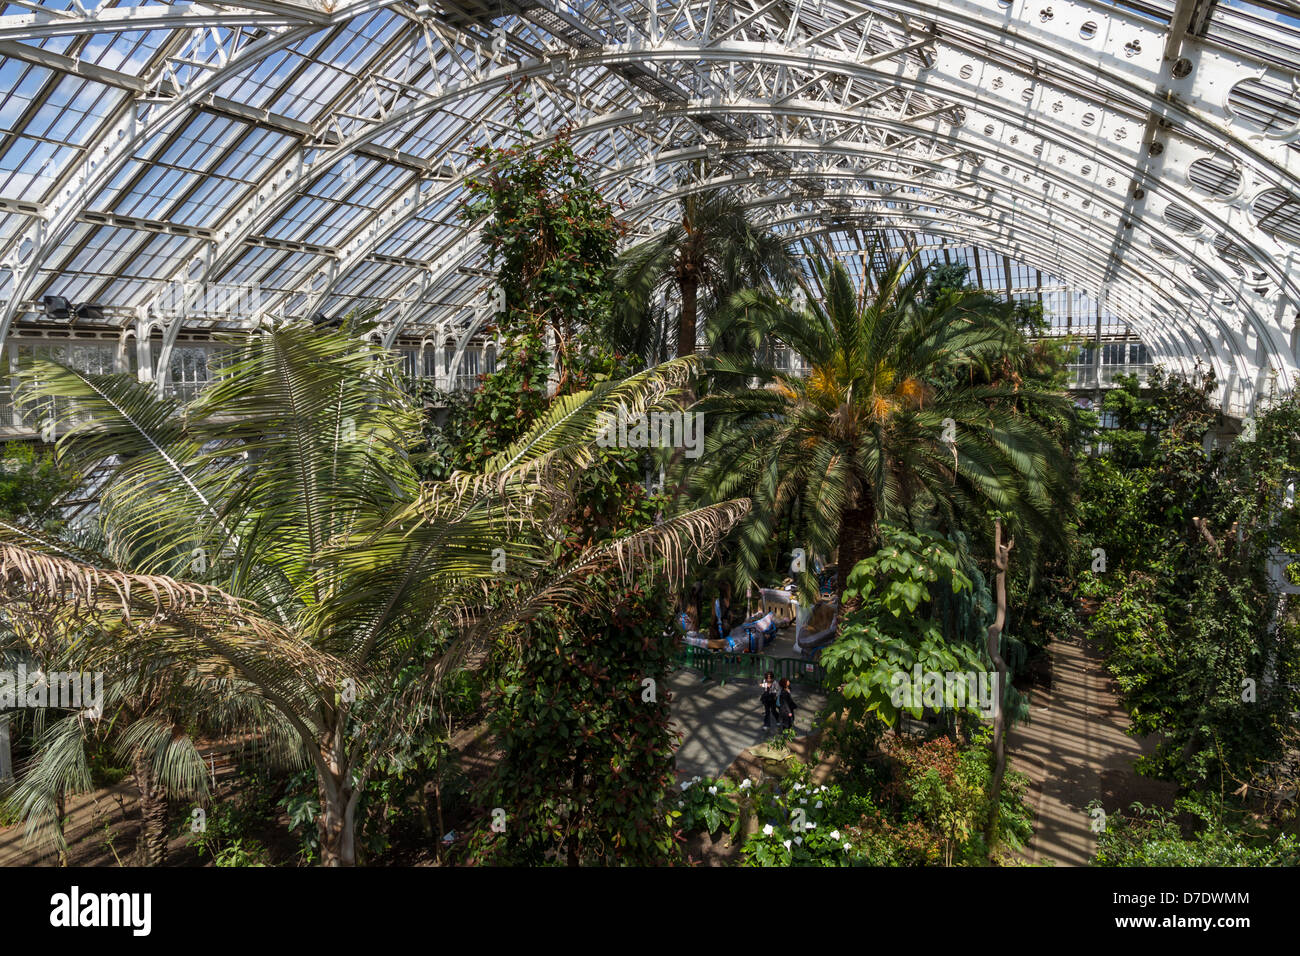 temperate stock photos u0026 temperate stock images alamy